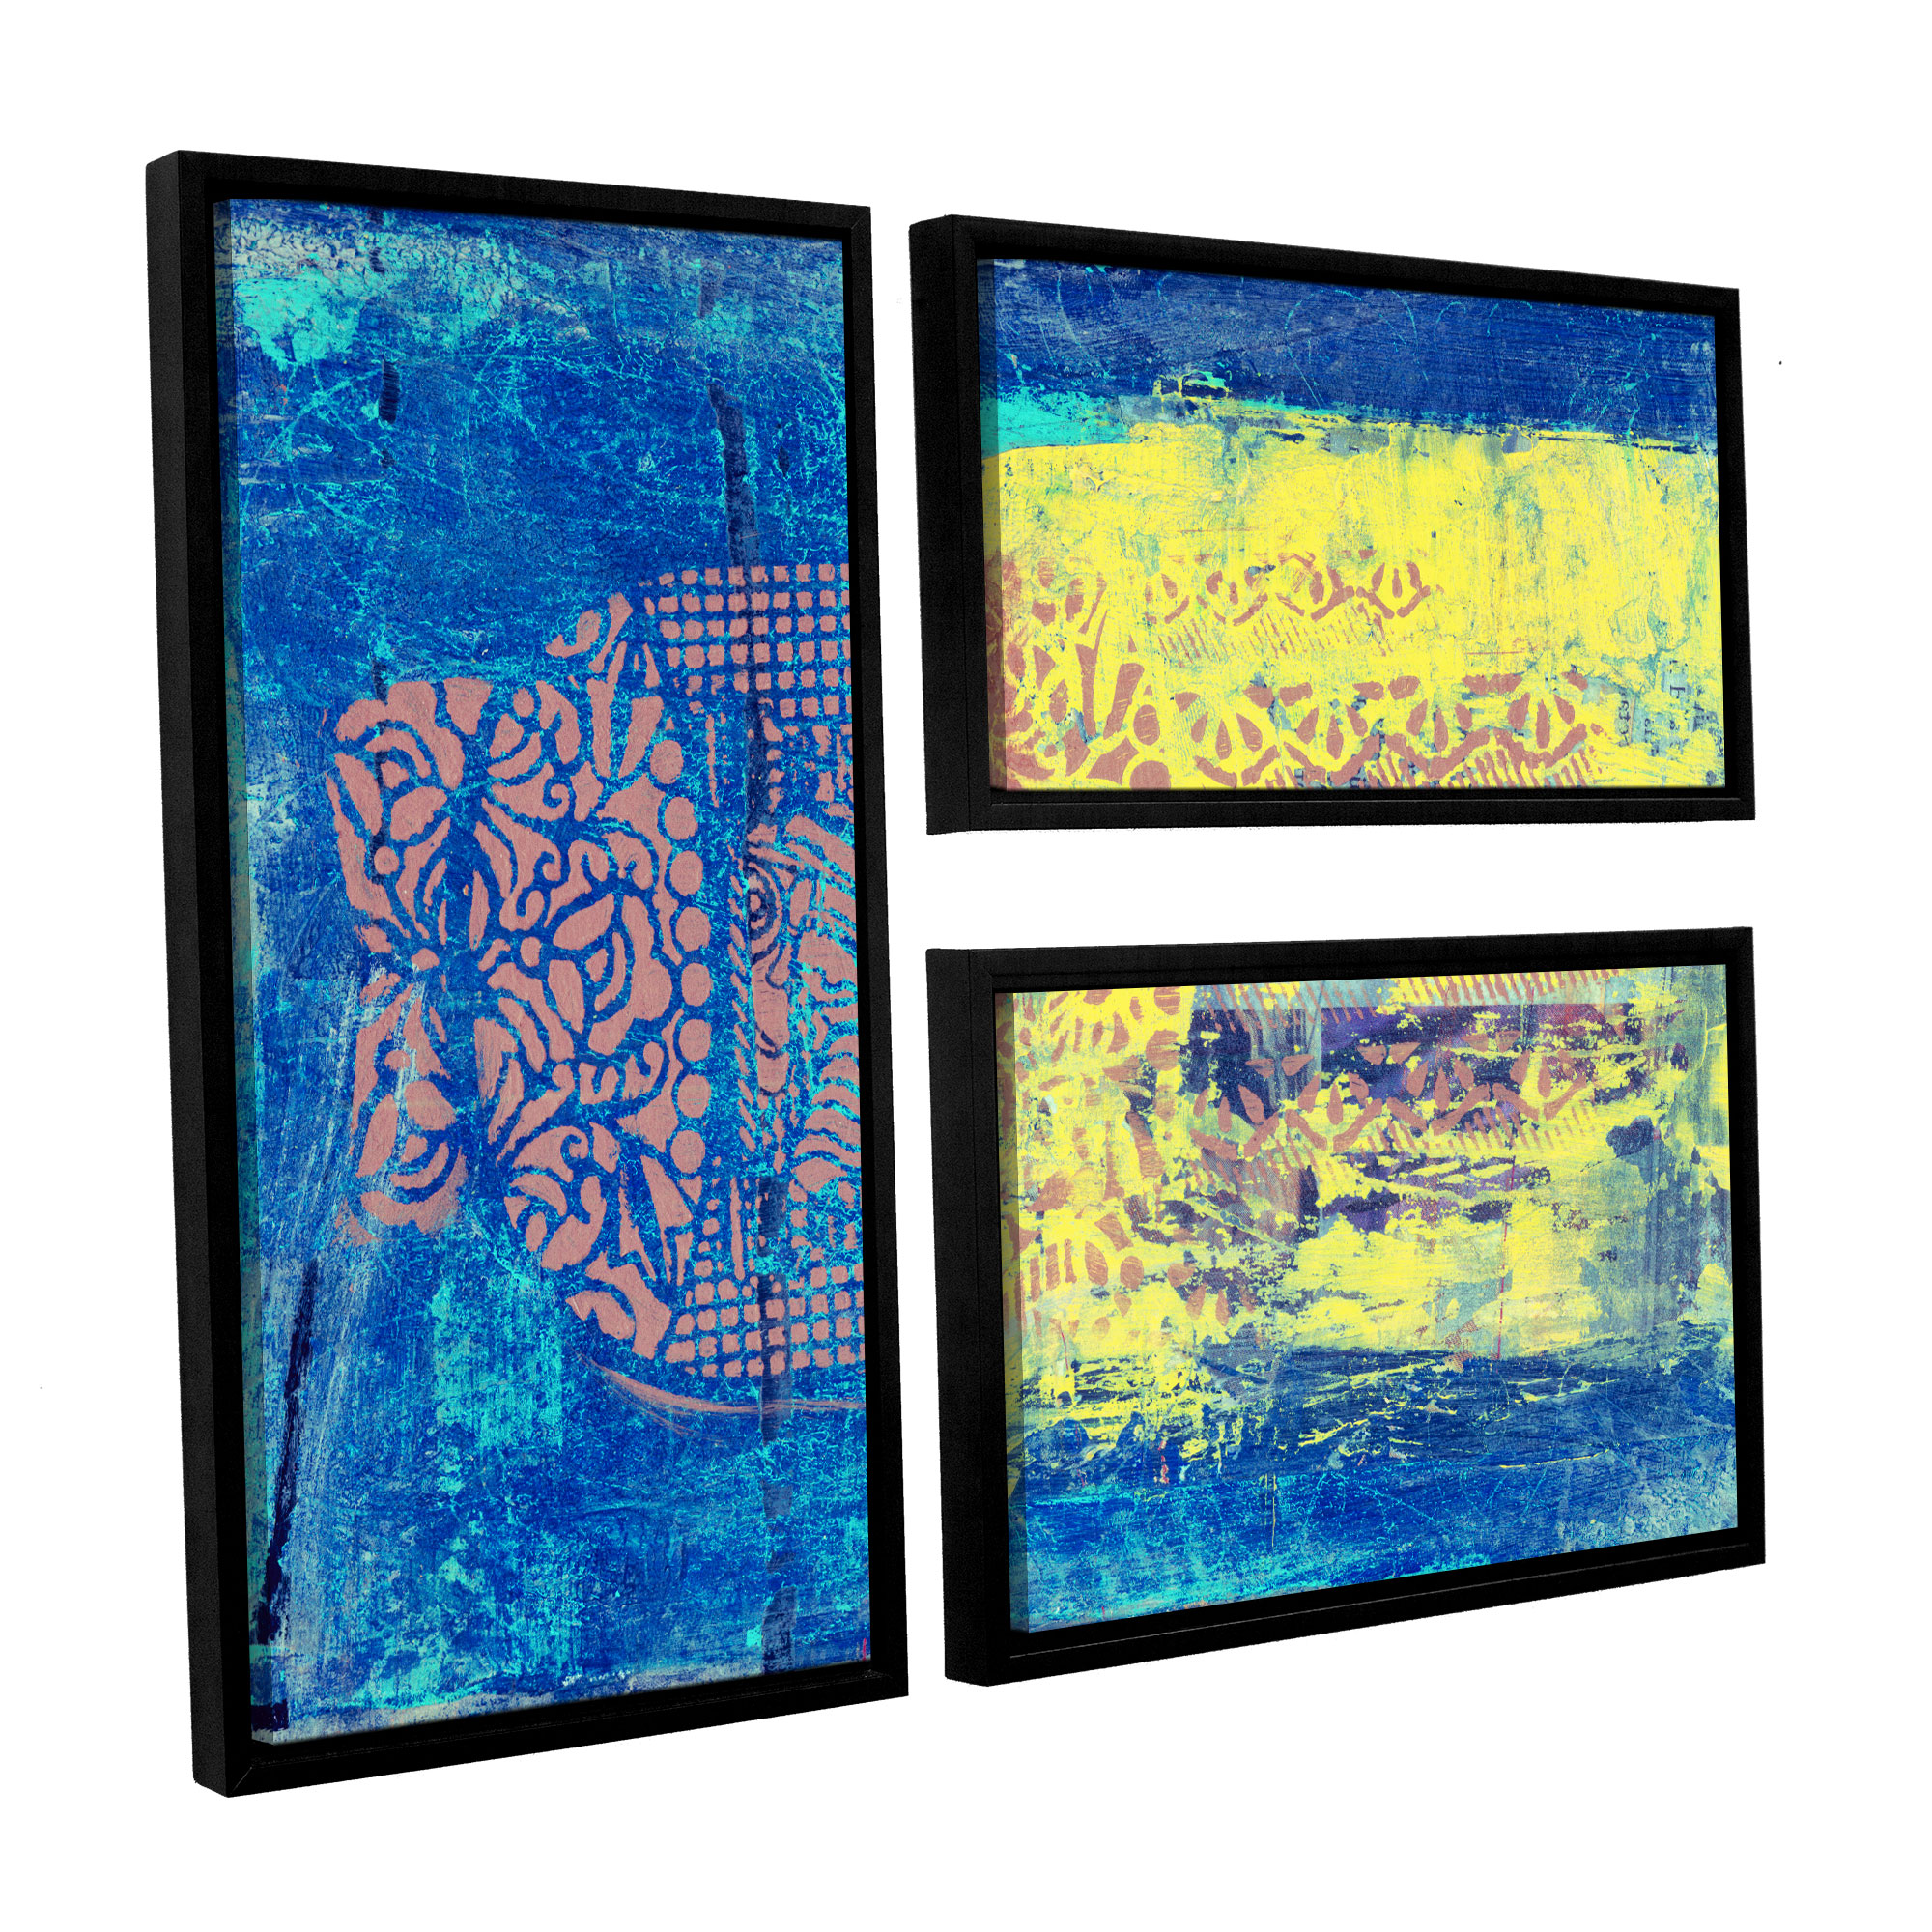 ArtWall Blue with Stencils by Elena Ray 3 Piece Framed Painting Print on Wrapped Canvas Set by Art Wall